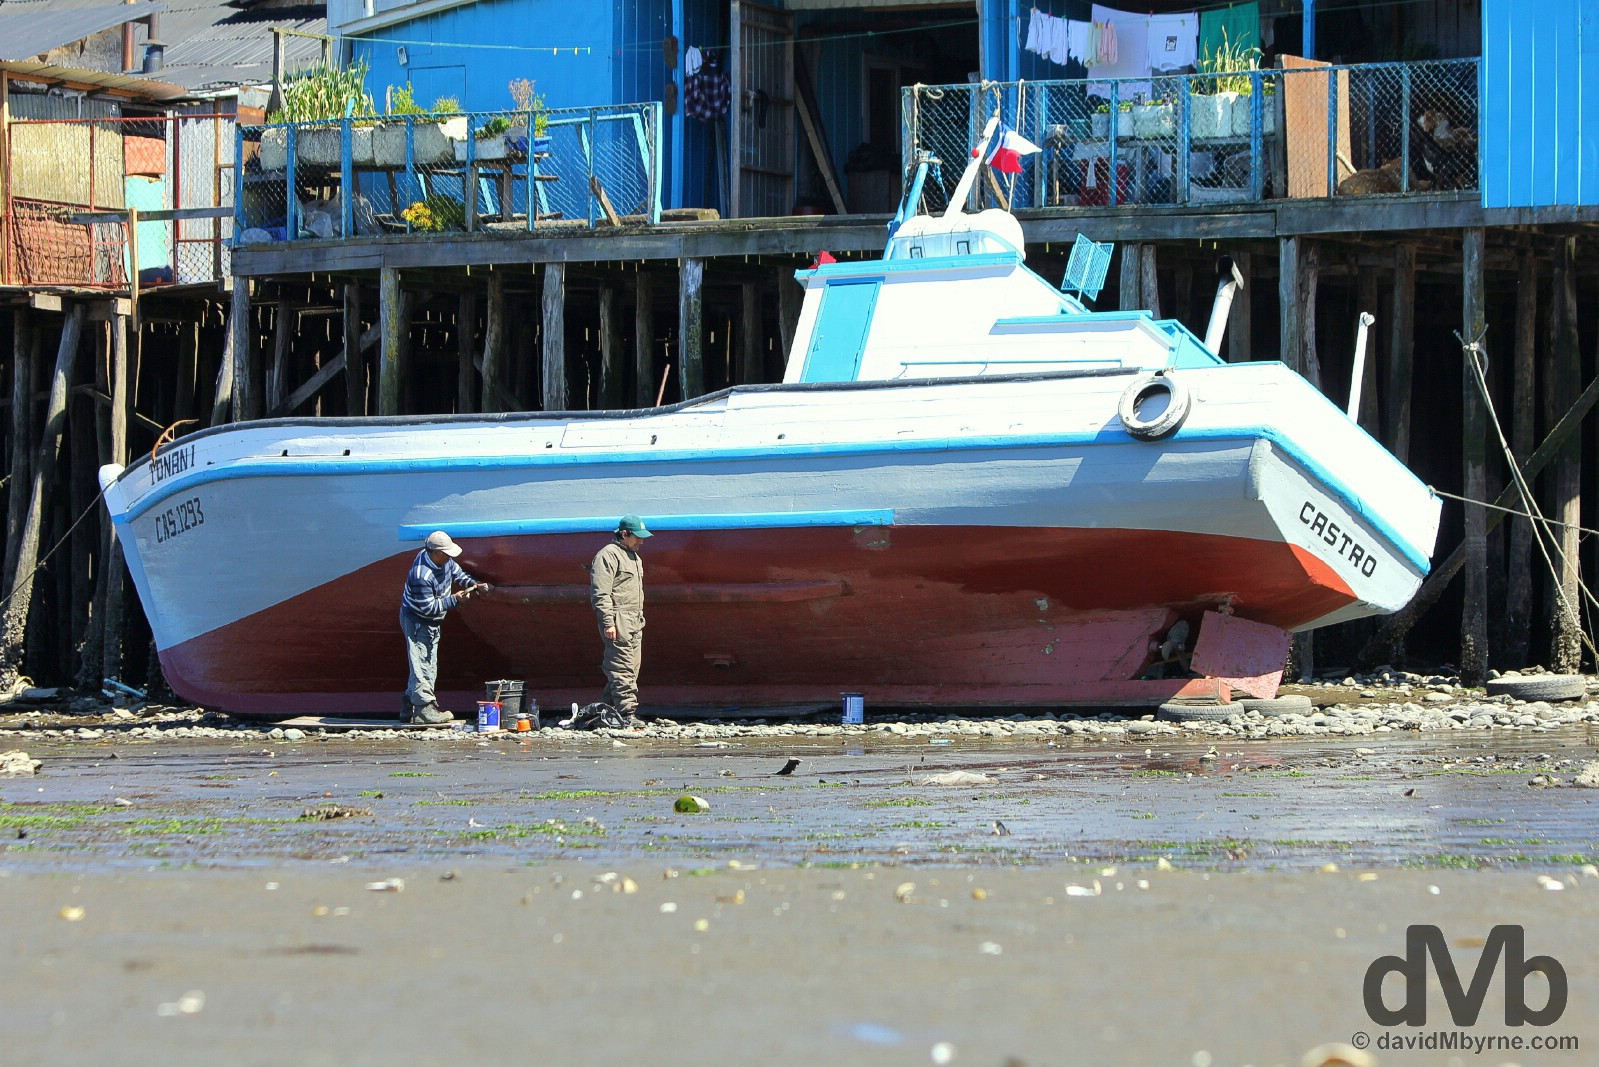 Boat maintenance at low tide in Castro, Chiloe, Chile. October 22, 2015.